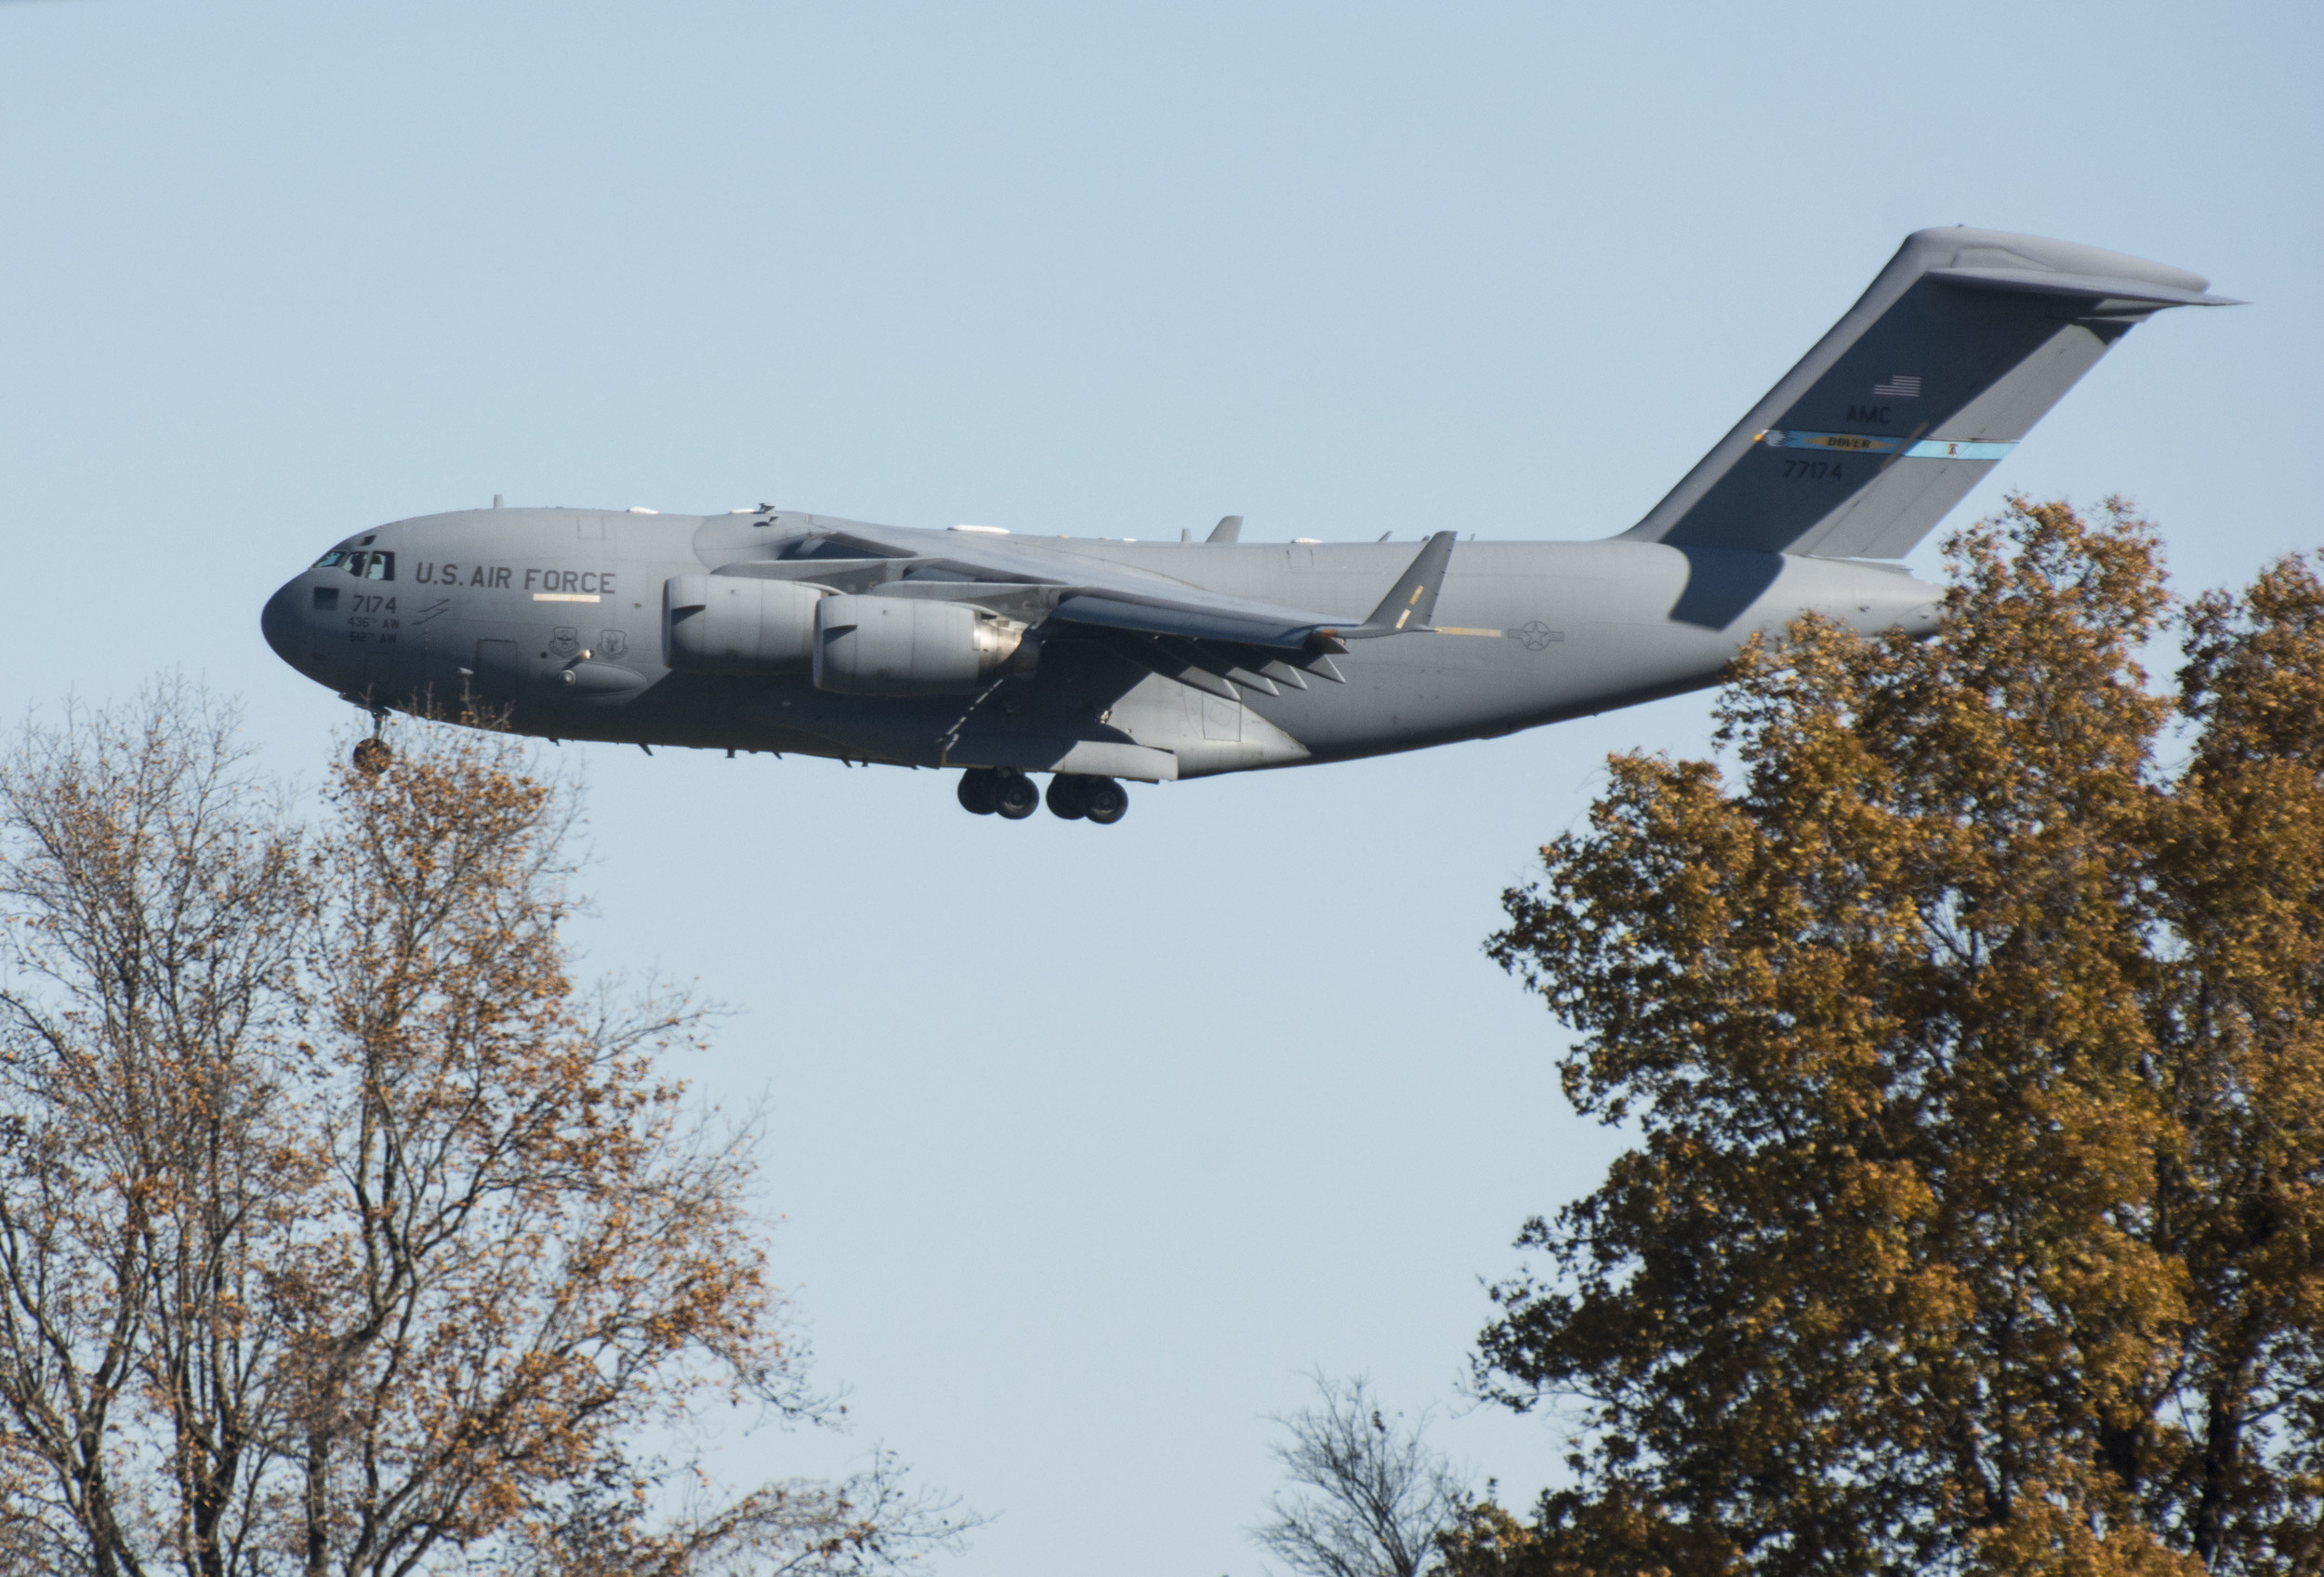 C-17 doing touch and go's at DAFB